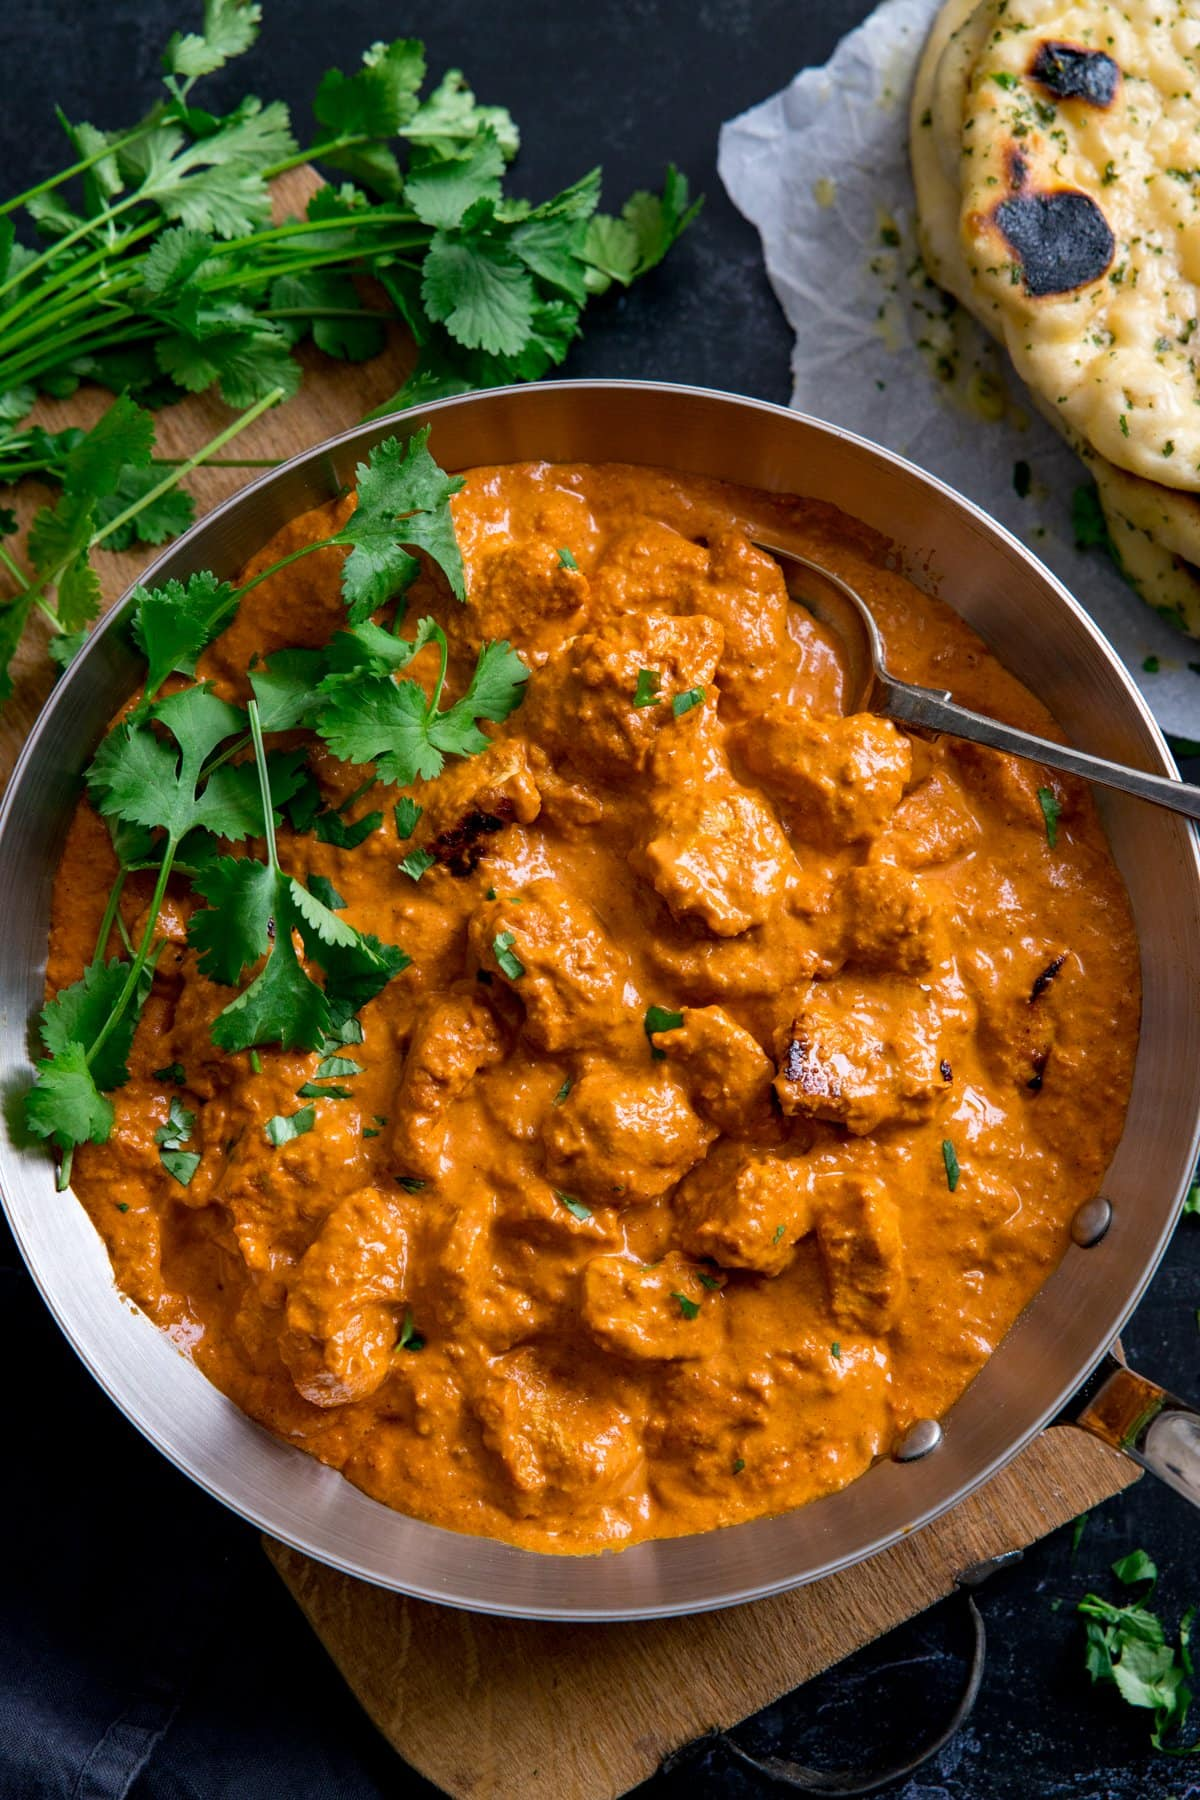 Overhead image of a pan filled with butter chicken curry, topped with fresh coriander. Naan bread just in shot.